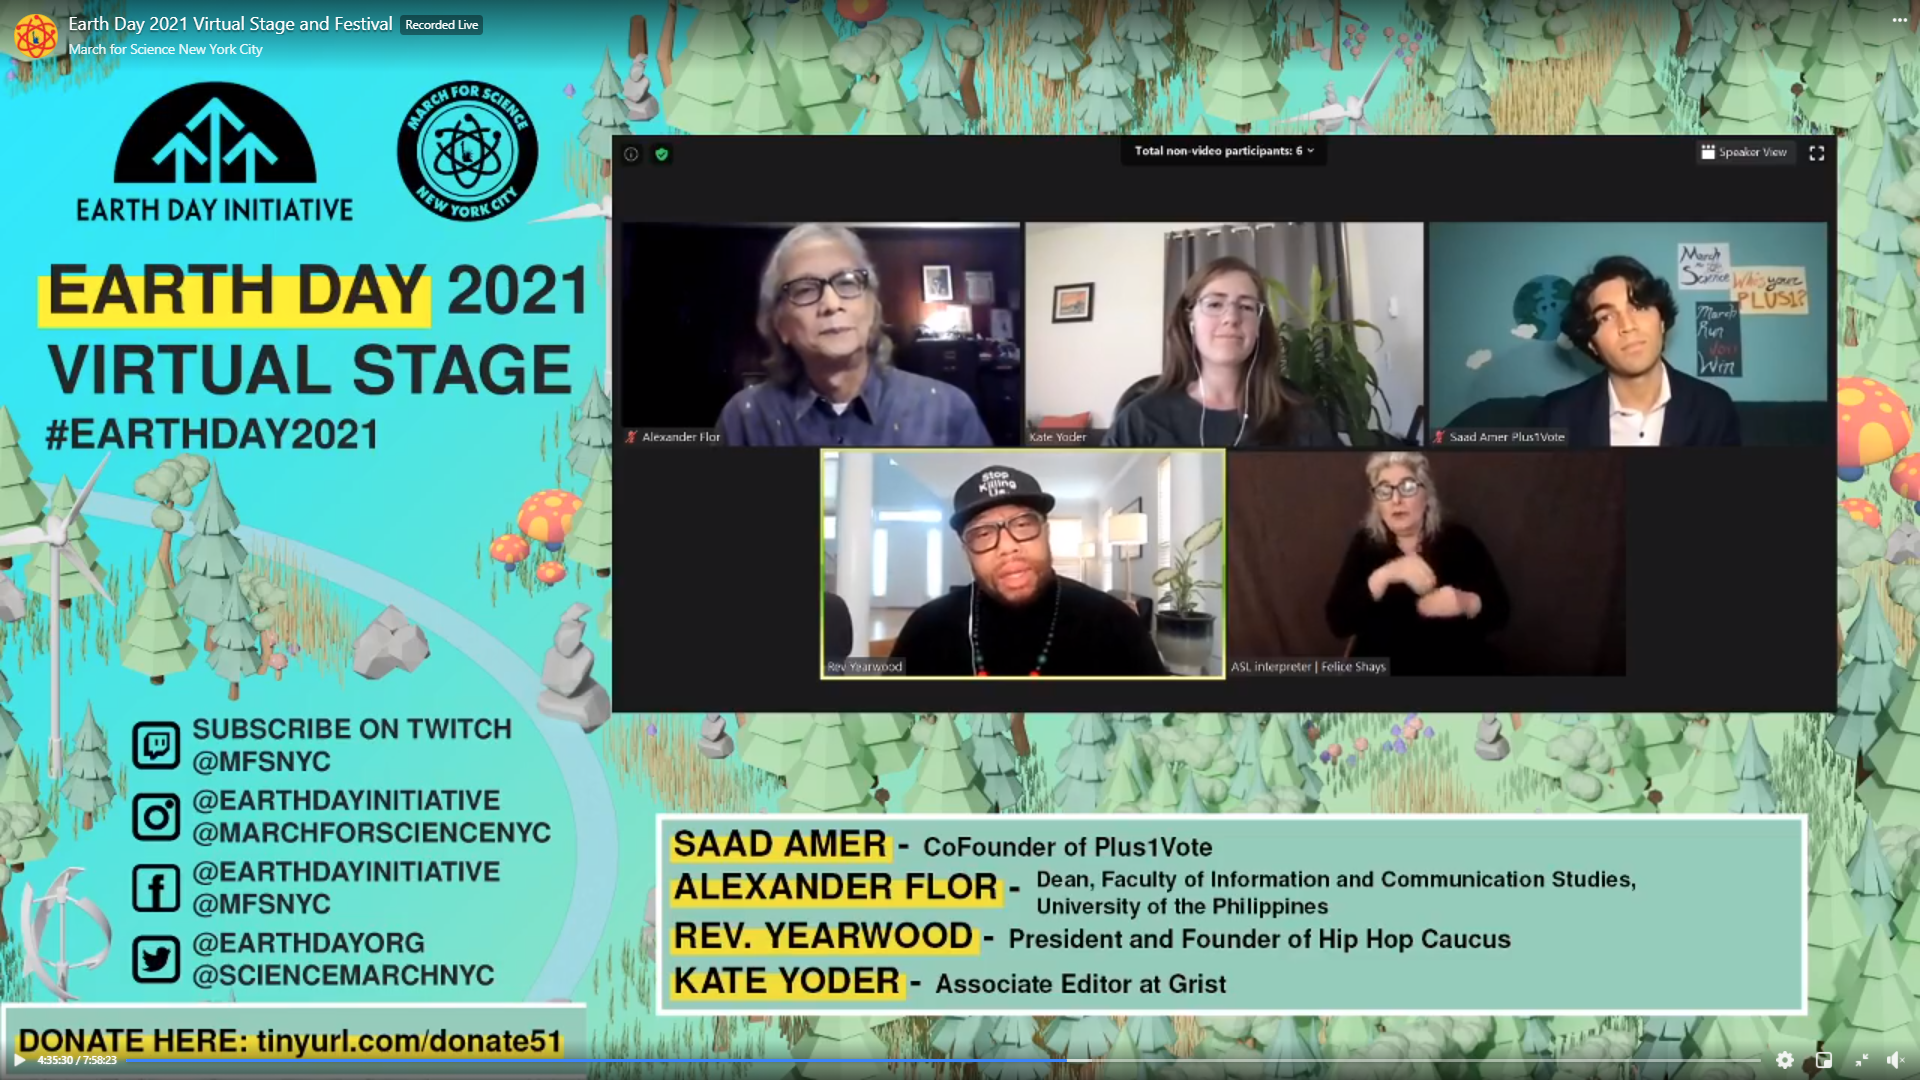 Dr. Alexander G. Flor (Top Left), Dean of the UPOU Faculty of Information and Communication Studies (FICS) and environmental communication expert, represented UPOU at the Earth Day 2021 Virtual Stage.